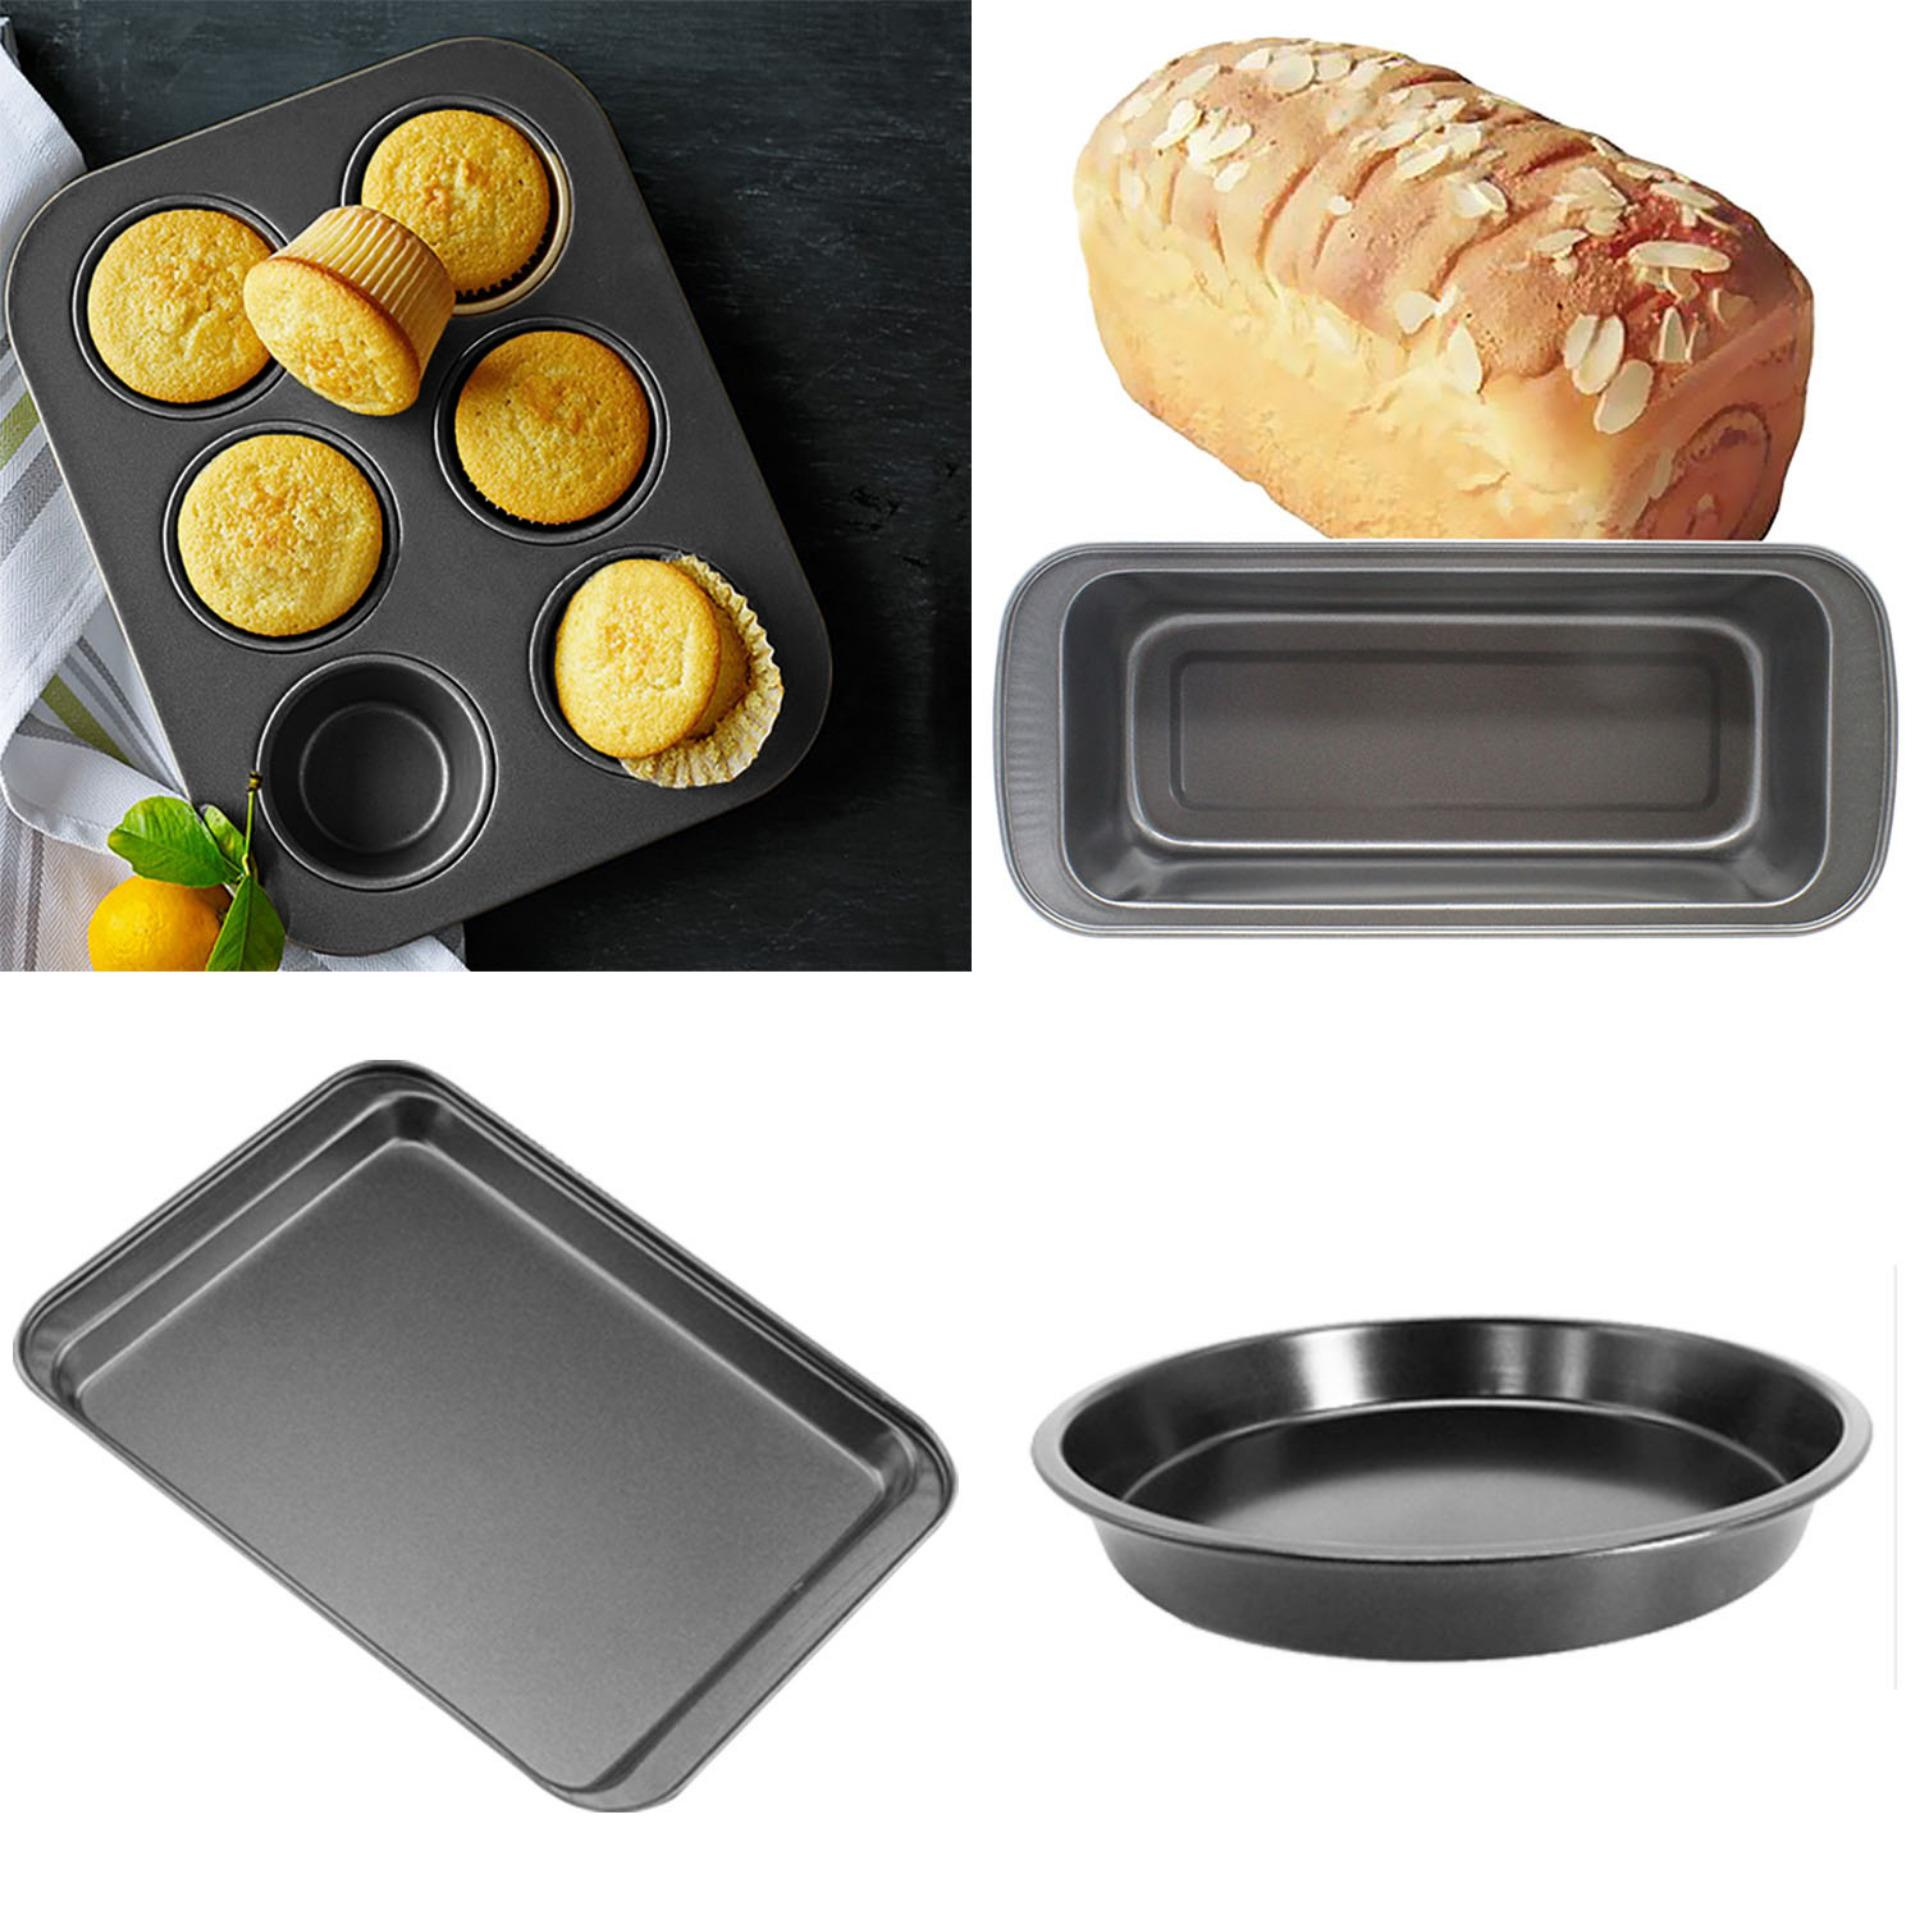 4 Pcs Carbon Steel Bakeware Set Non Stick Baking Bread Cake Pizza Tray Plate Container Intl Promo Code